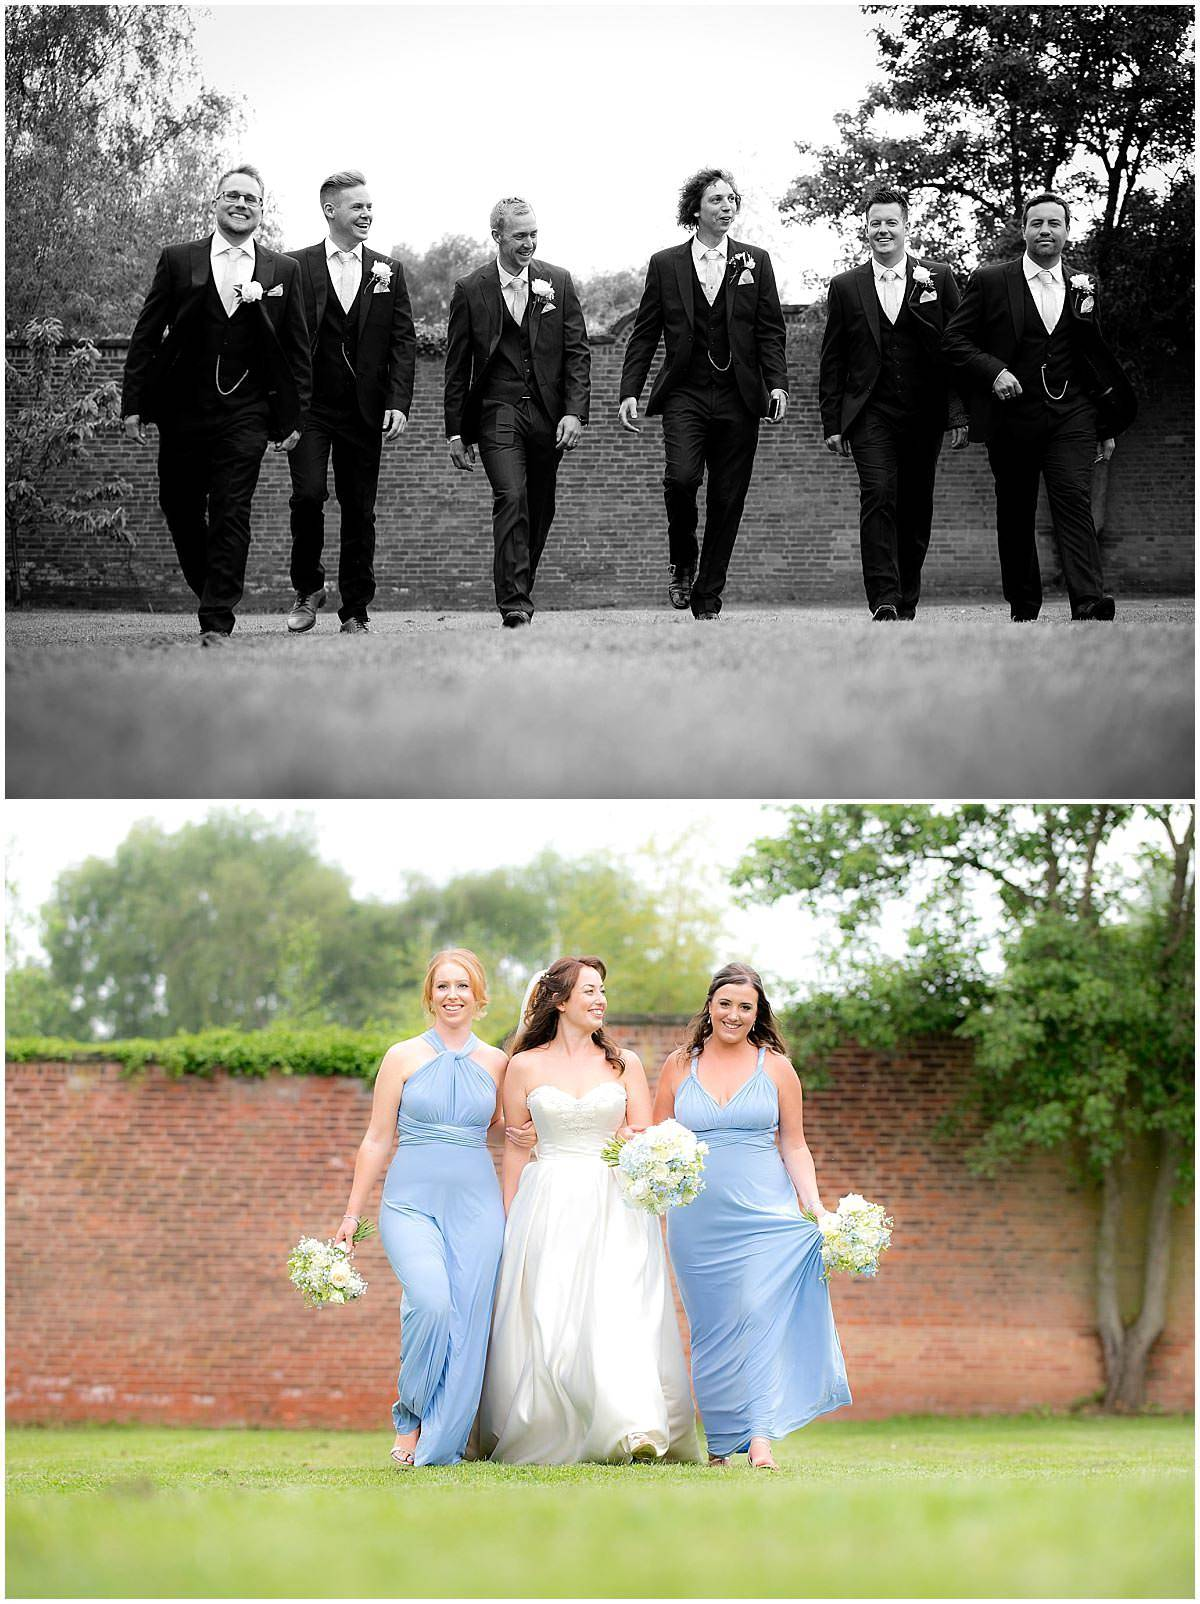 Bridesmaids and grooms-men